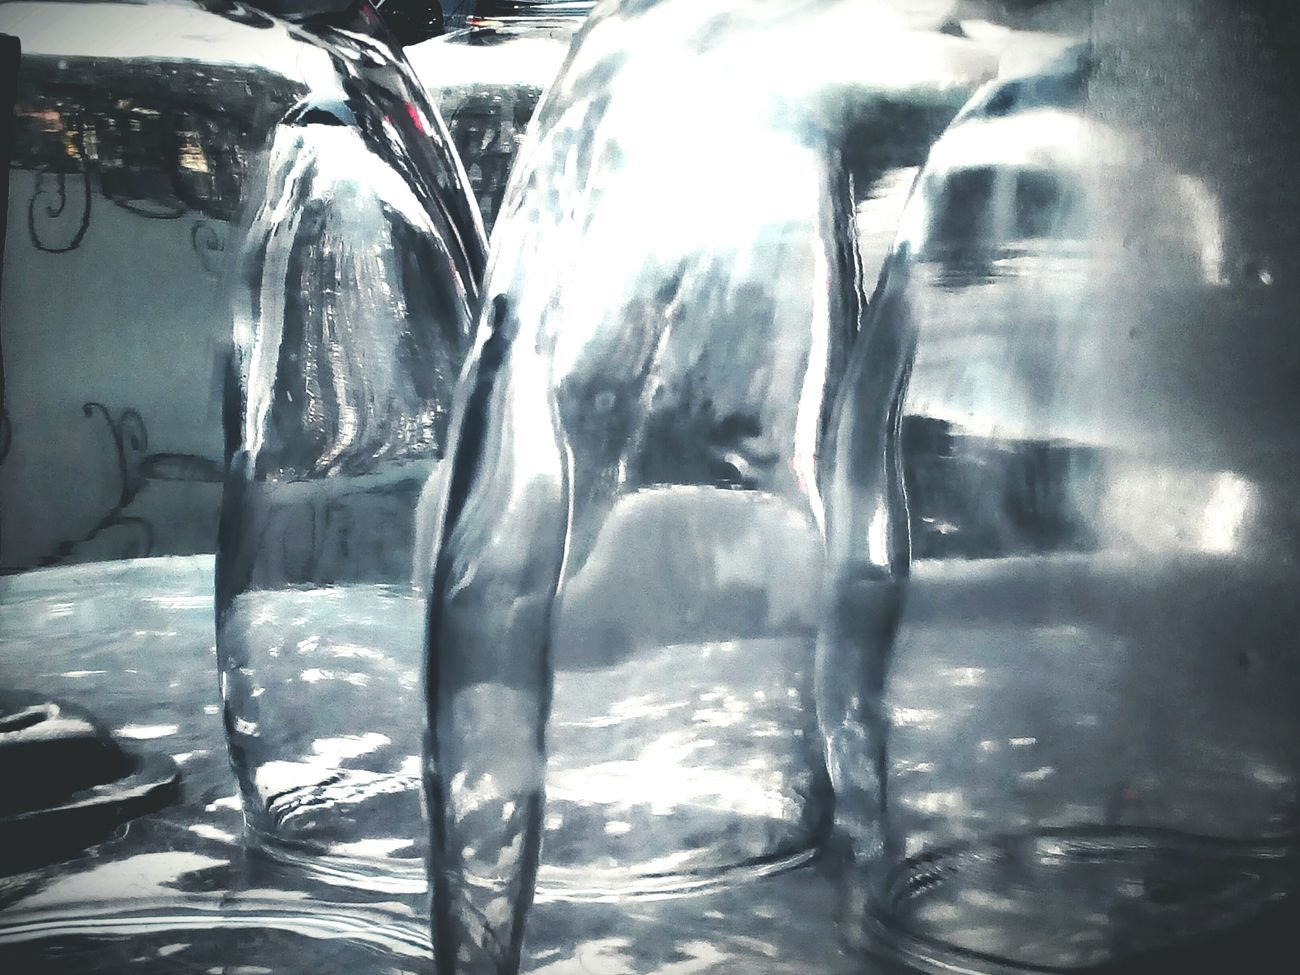 RePicture Growth Glass Reflection Rickshaw Check This Out Popular Mobile Photography Fahimz7 Eyeem Chittagong EyeEm Gallery Eye4photography  Reflection Creative Photo Cellphone Photography Random Clicks EyeEm Masterclass EyeEm Best Shots EyeEm Best Edits Eyeem Reflections Good Night Sshhh Ciao Dekha Hobe